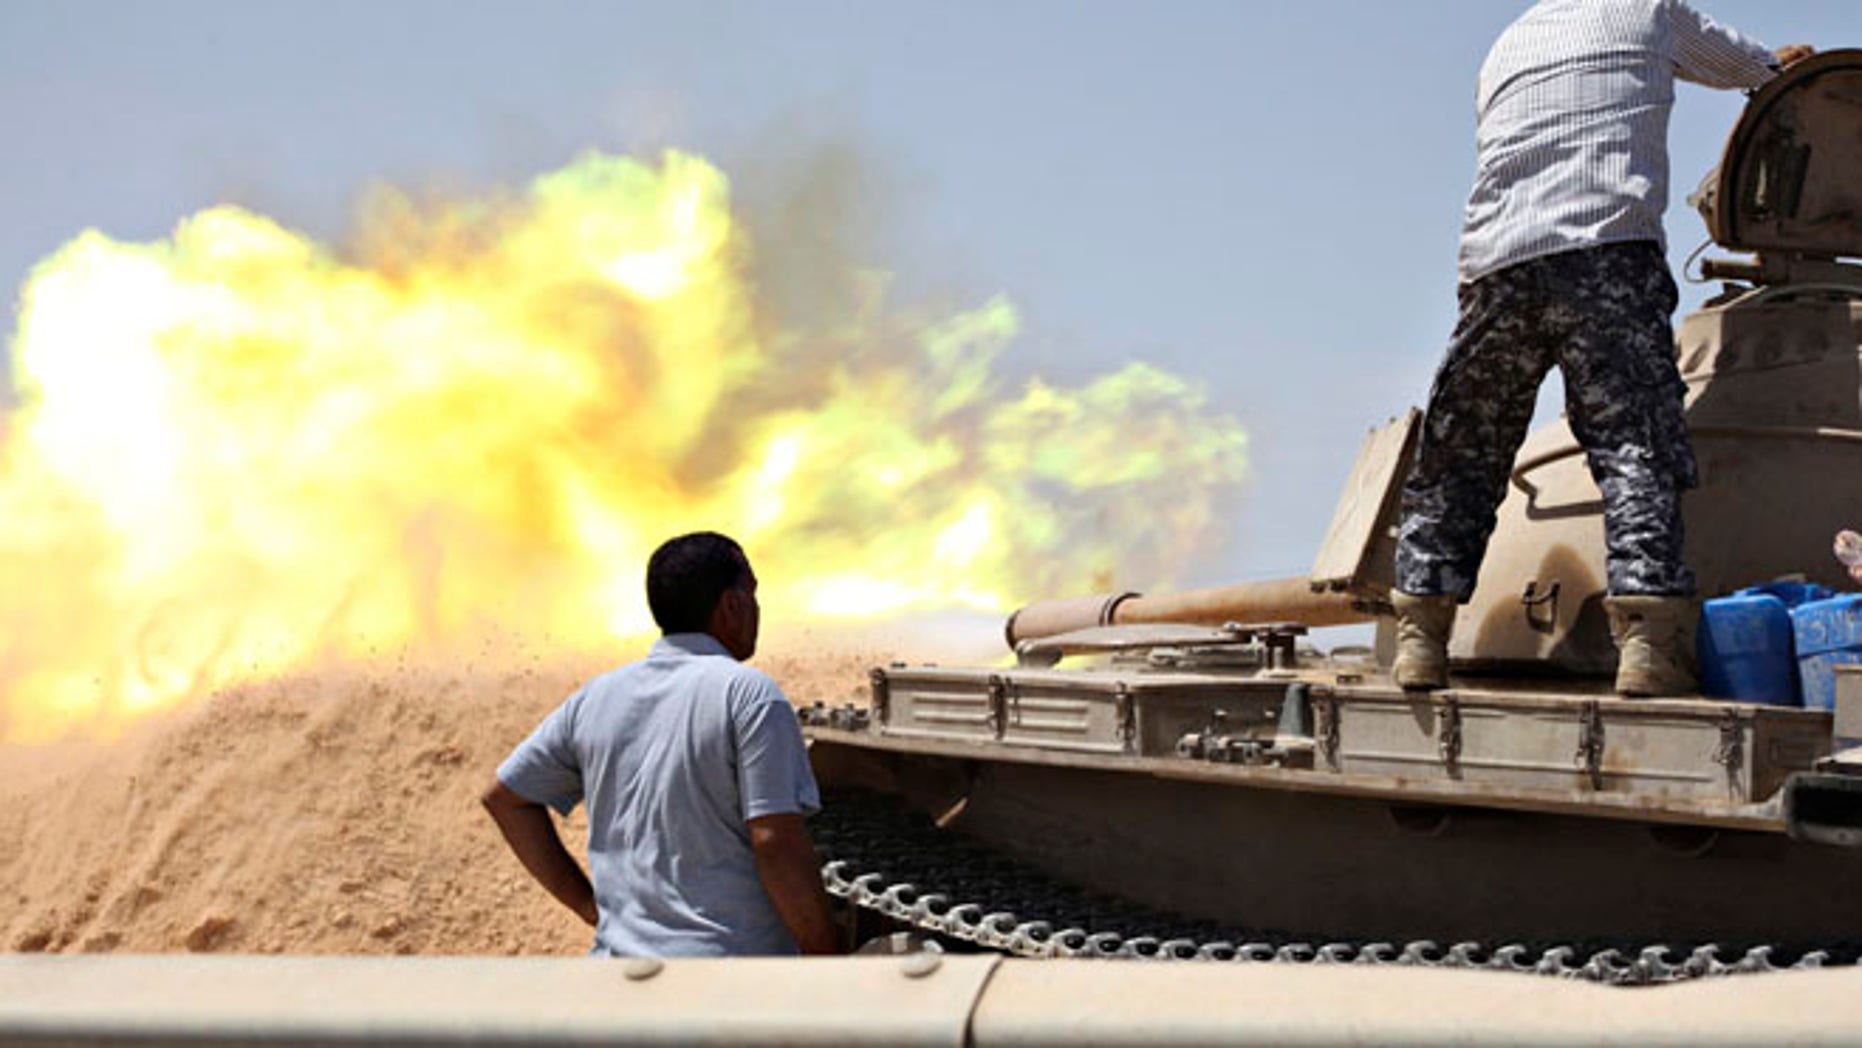 Aug 22, 2014: A tank belonging to the Western Shield, a branch of the Libya Shield forces, fires during a clash with rival militias around the former Libyan army camp, Camp 27, in the 27 district, west of Tripoli. (Reuters)